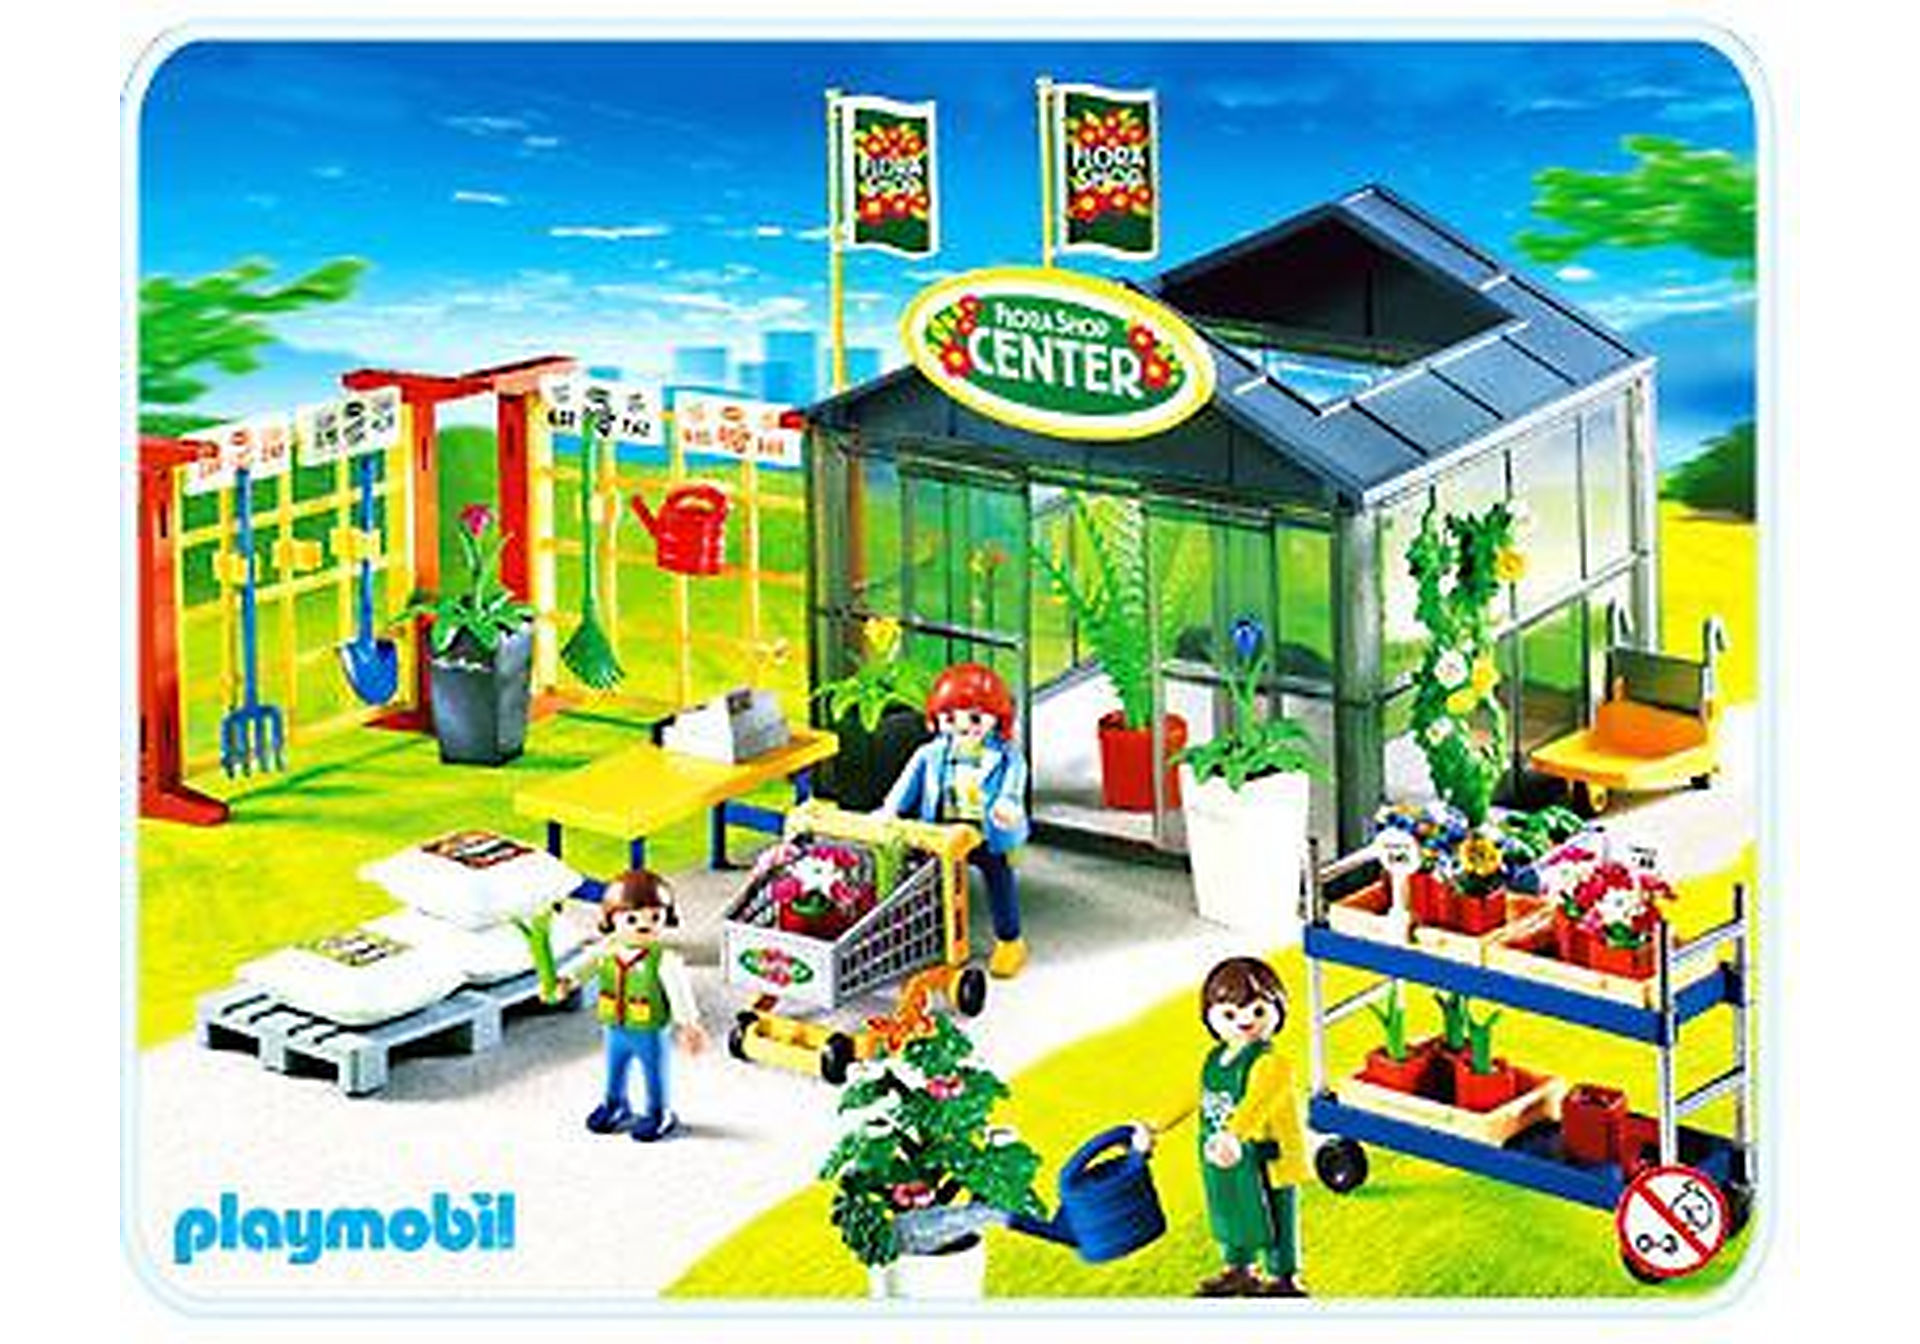 http://media.playmobil.com/i/playmobil/4480-A_product_detail/Gartencenter